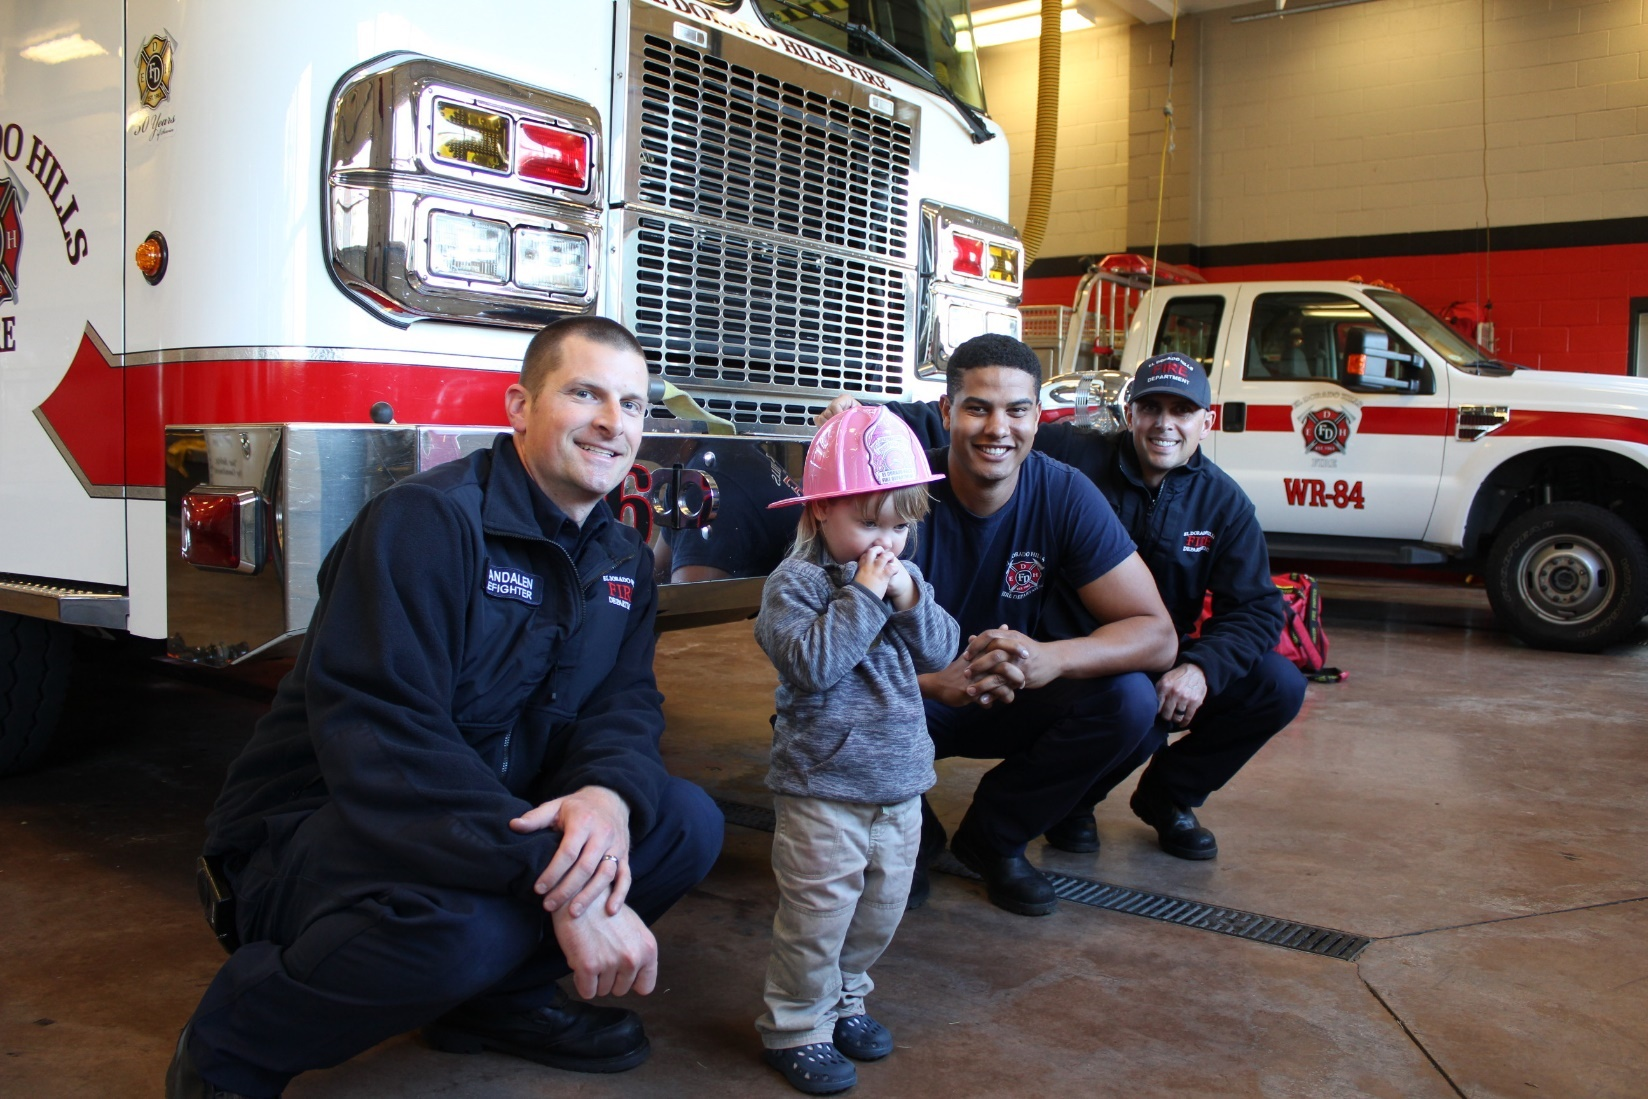 March 16 Treats to Fire Fighters